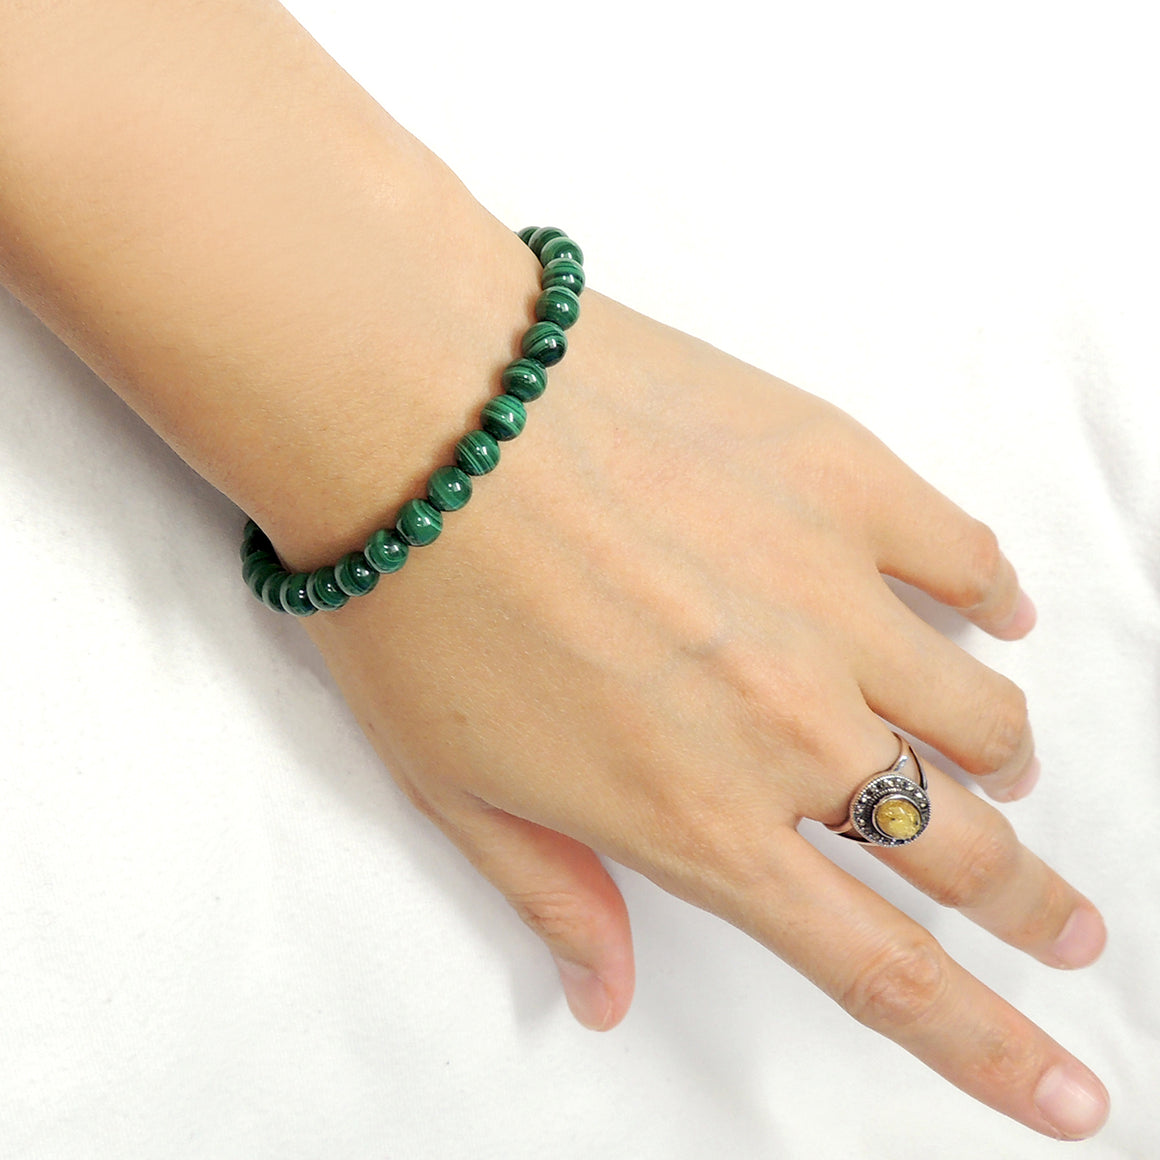 Handmade Braided Healing Gemstone Bracelet - 6mm Malachite & Adjustable Drawstring BR1607